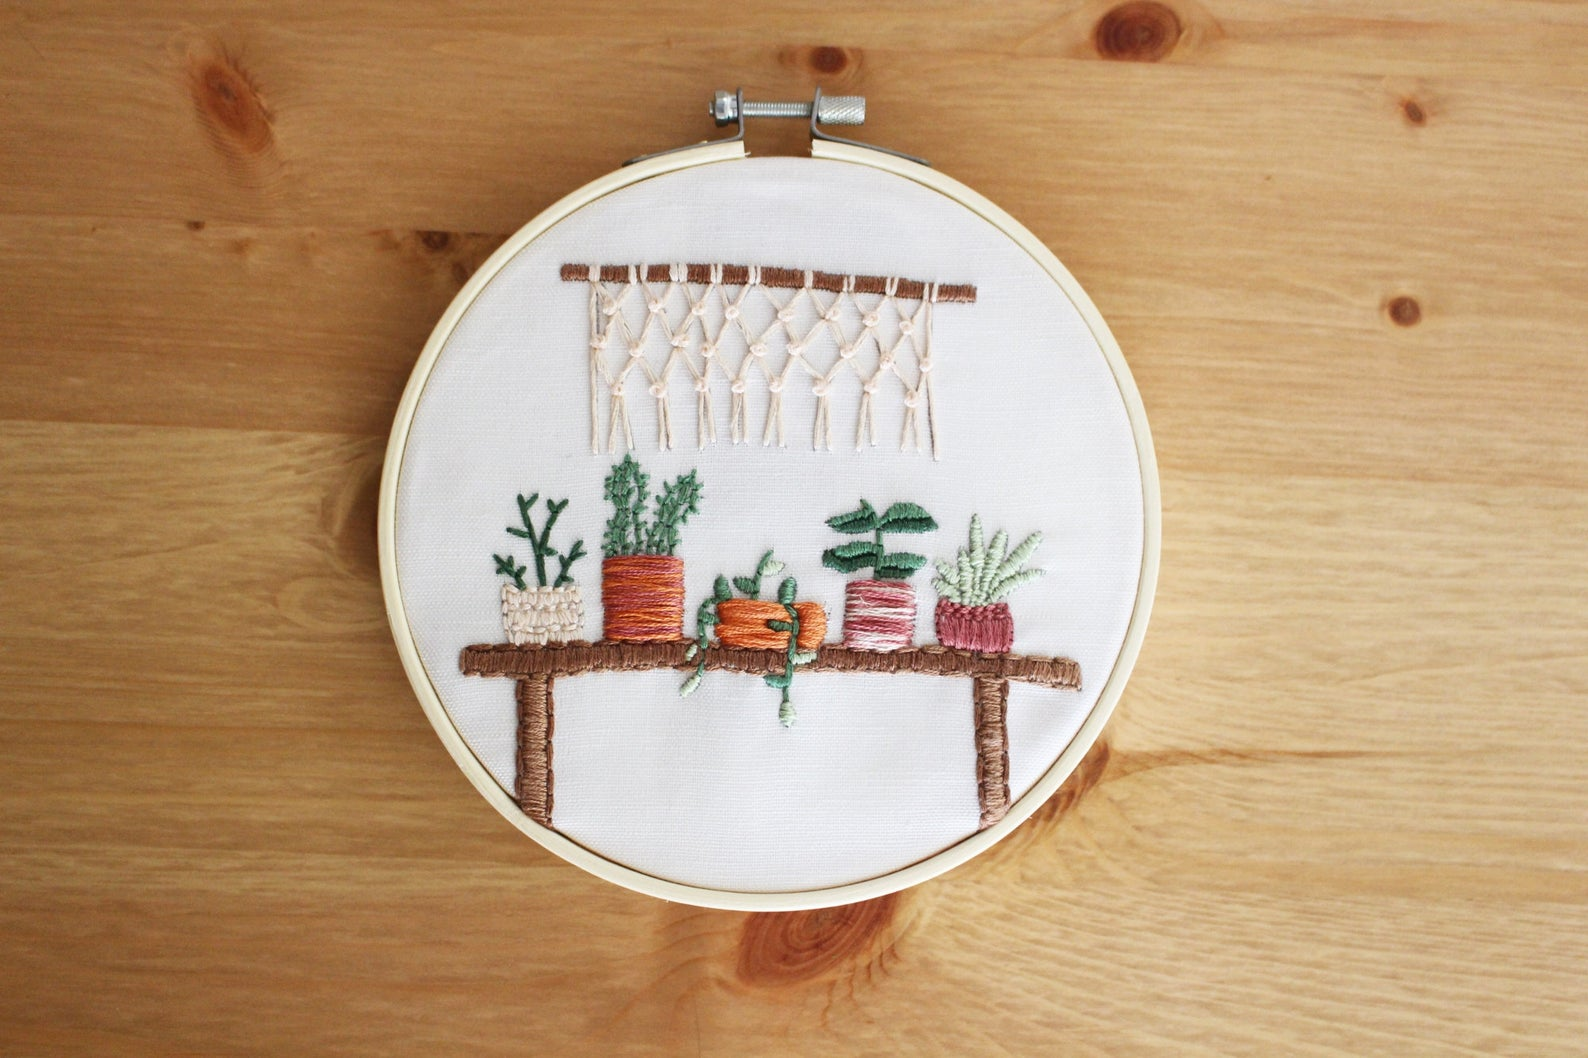 houseplant embroidery kit